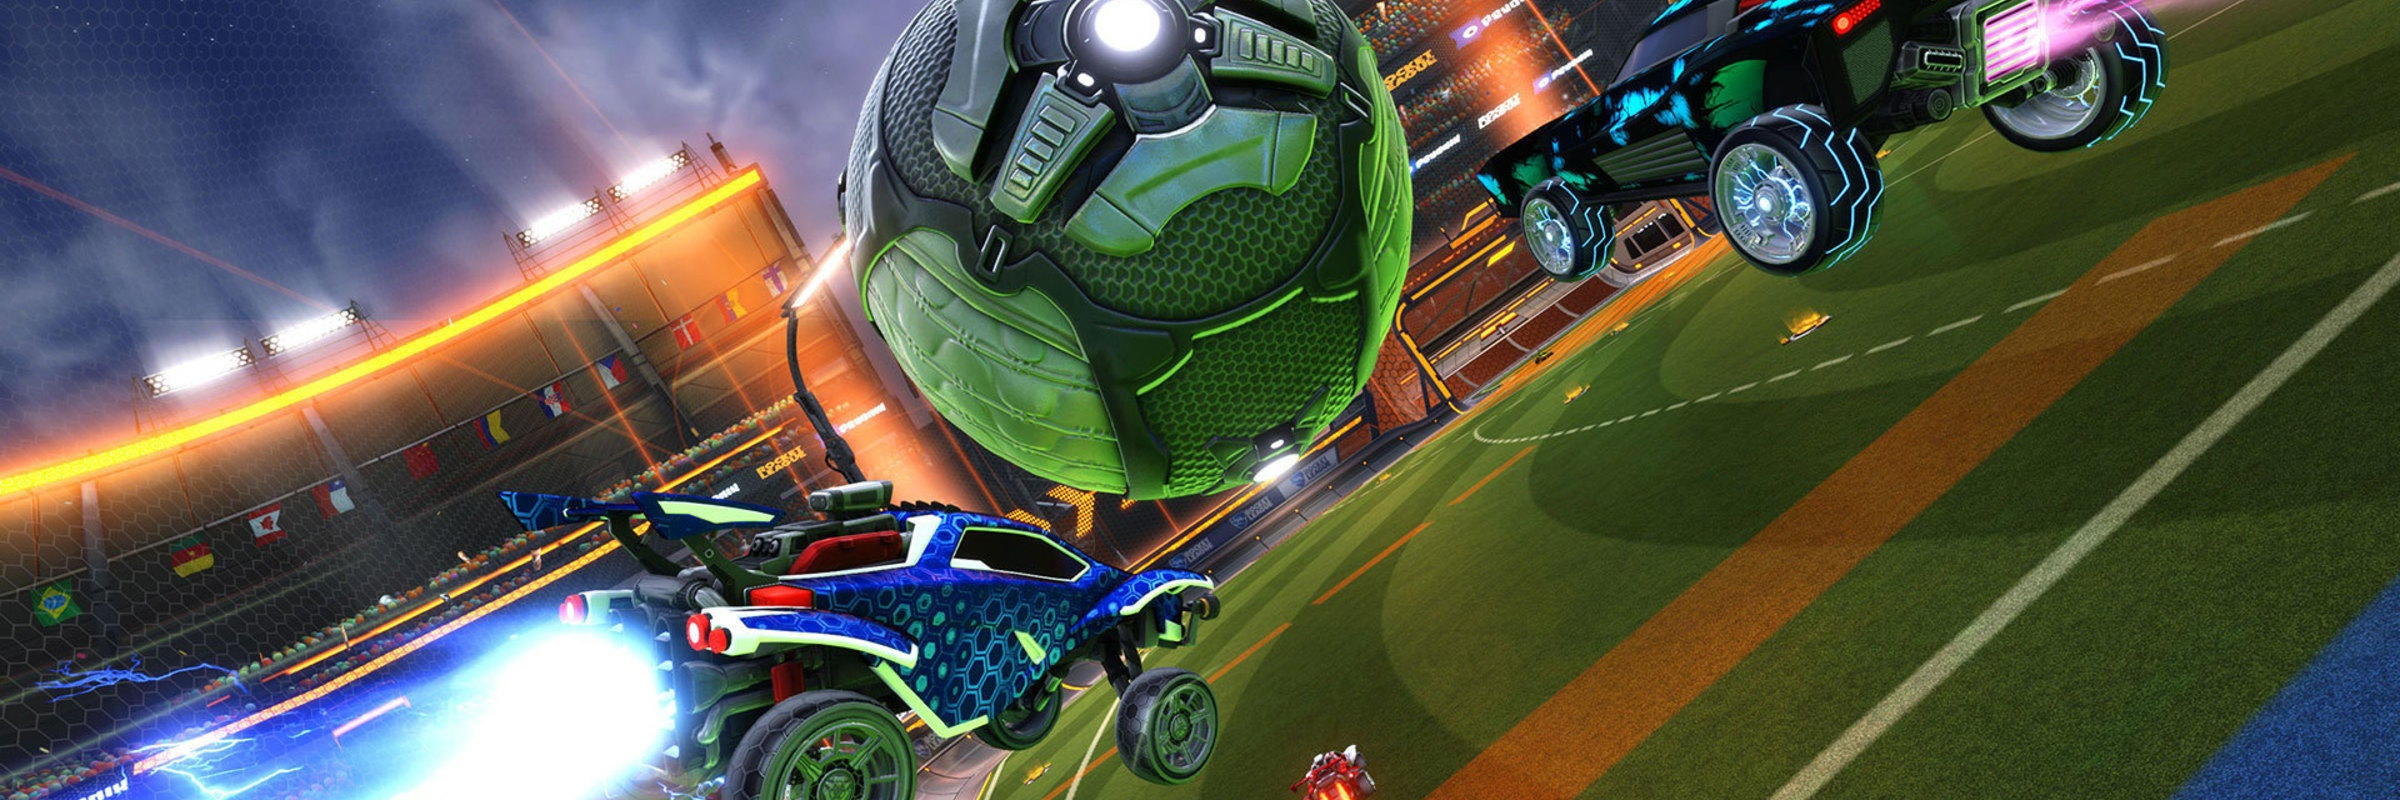 Sign-ups Open for High School Rocket League Competition on PlayVS Image